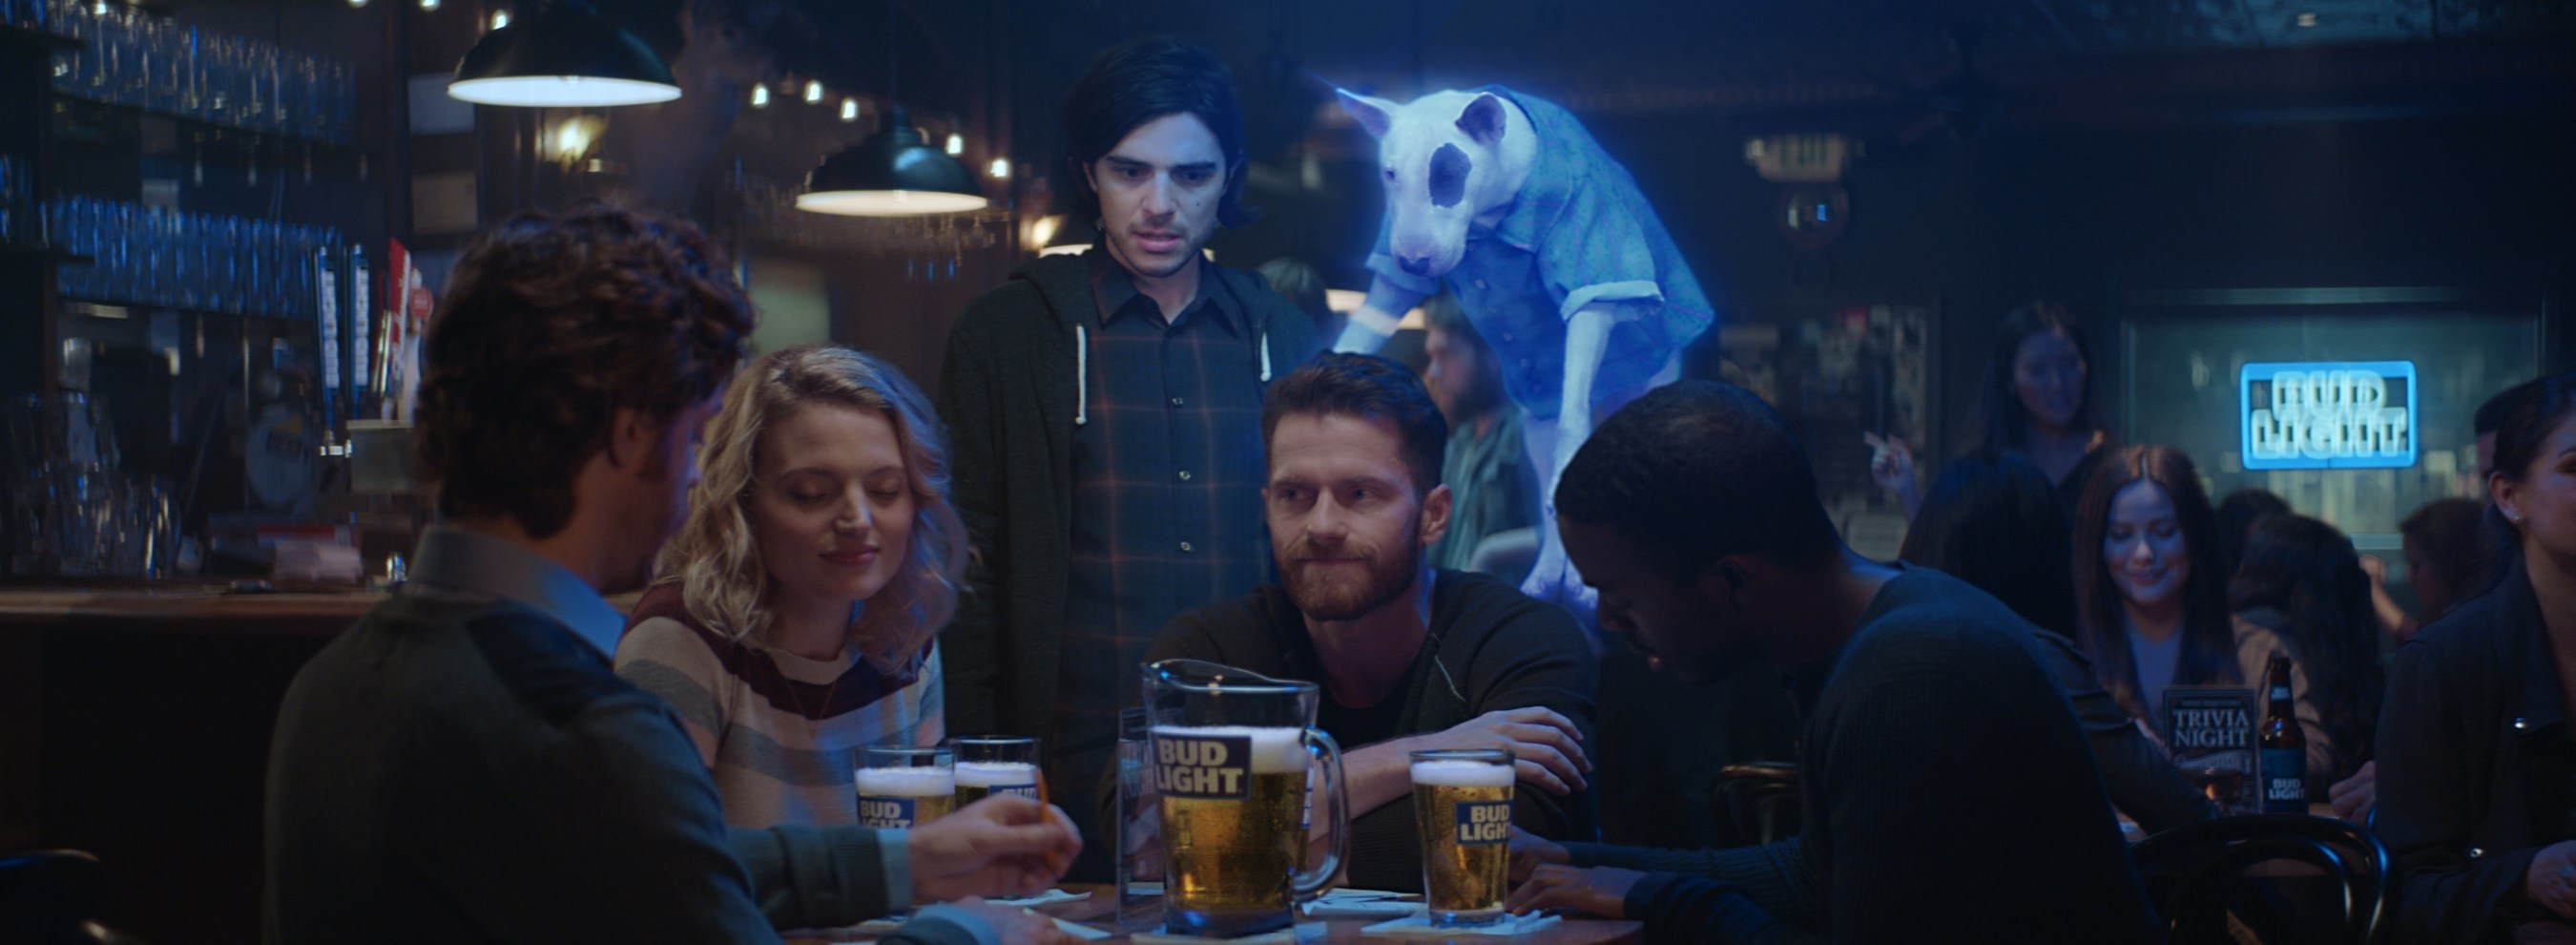 Super bowl li 51 beer commercial review the beer connoisseur bud light puts friendship front and center in super bowl ad spot by featuring bud light aloadofball Image collections